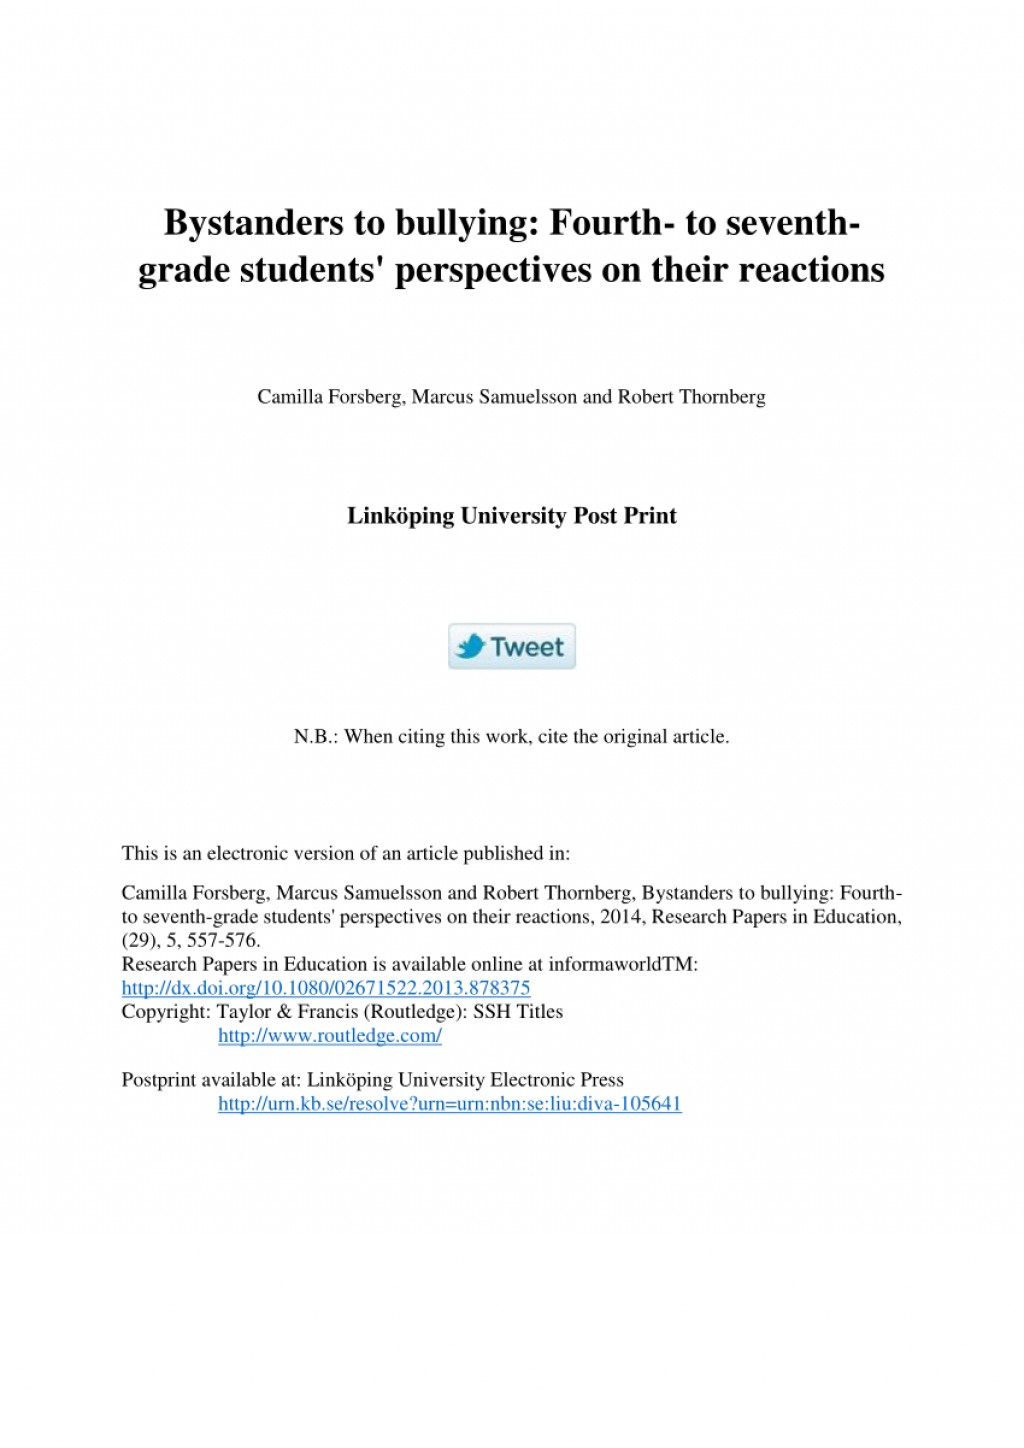 003 Research Paper Bullying Papers Formidable Anti Titles For Cyberbullying Tagalog Large